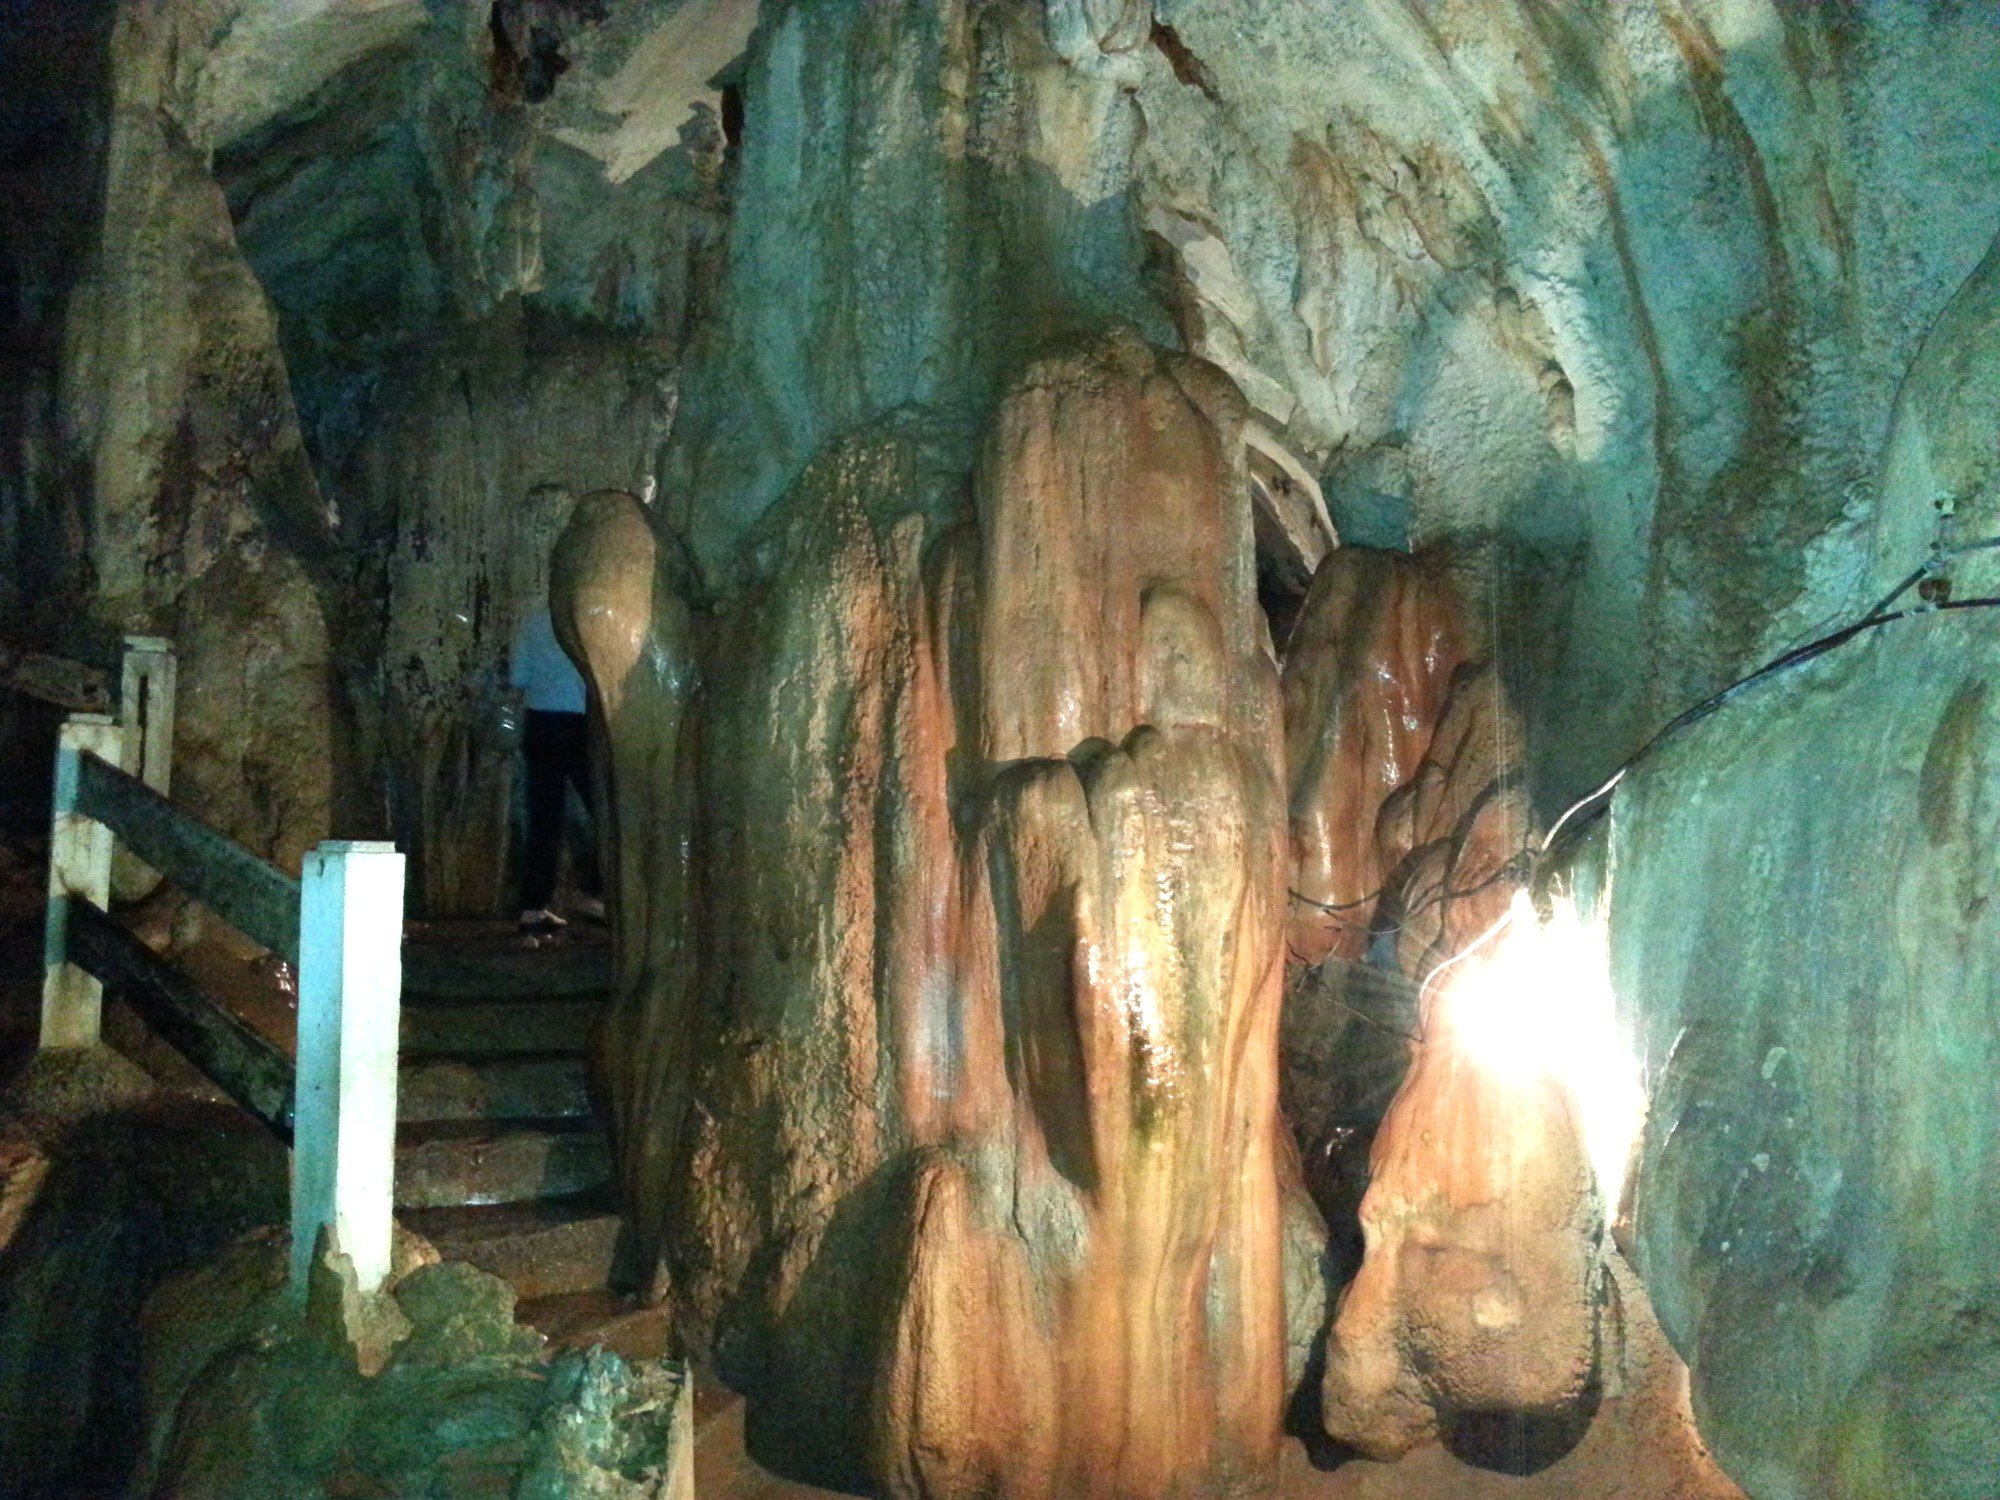 Staircase down into Tham Chang Cave